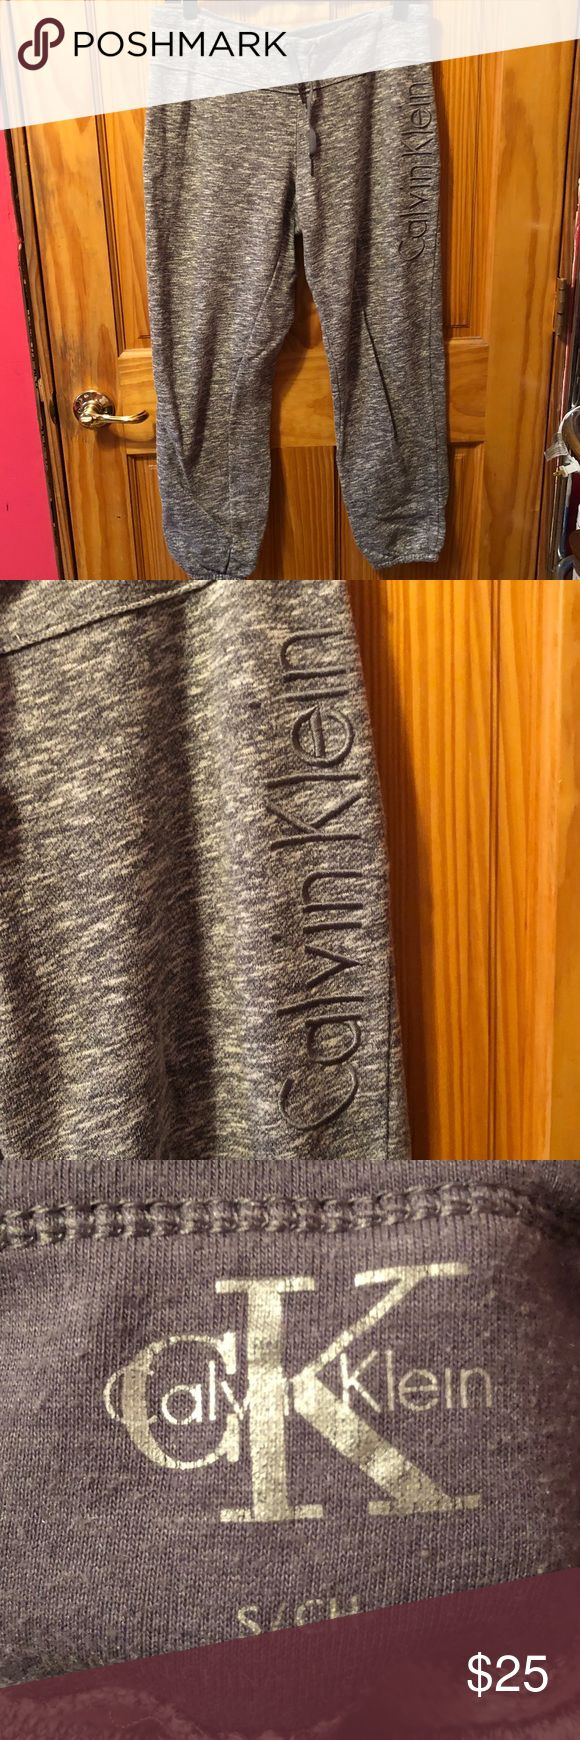 Calvin Klein Sweats Like new condition. From smoke free house. No damages Calvin Klein Pants Track Pants & Joggers